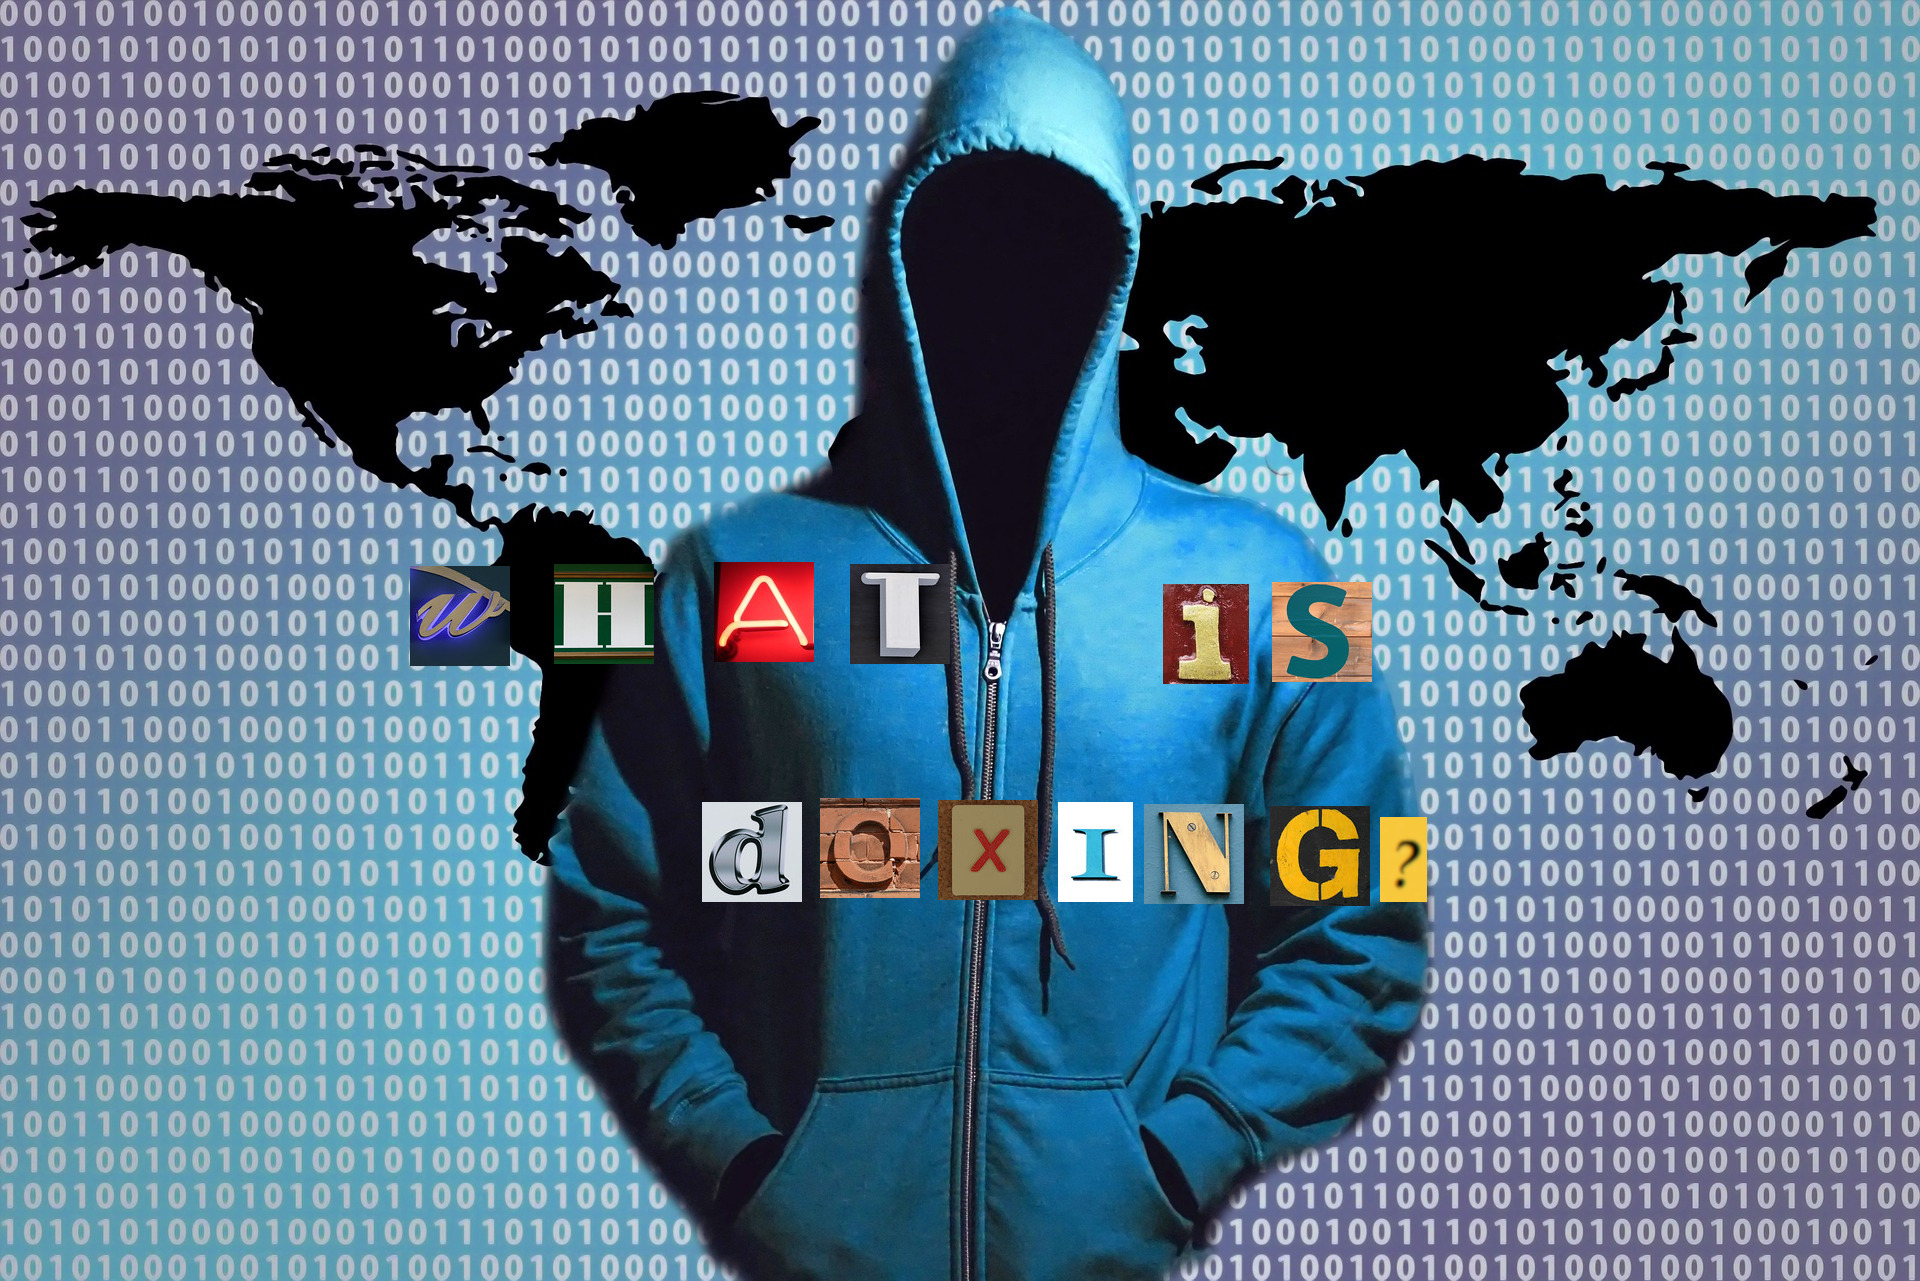 hacker doxing cybersecurity security awareness training phish prevention scam identity protection secure your digital life